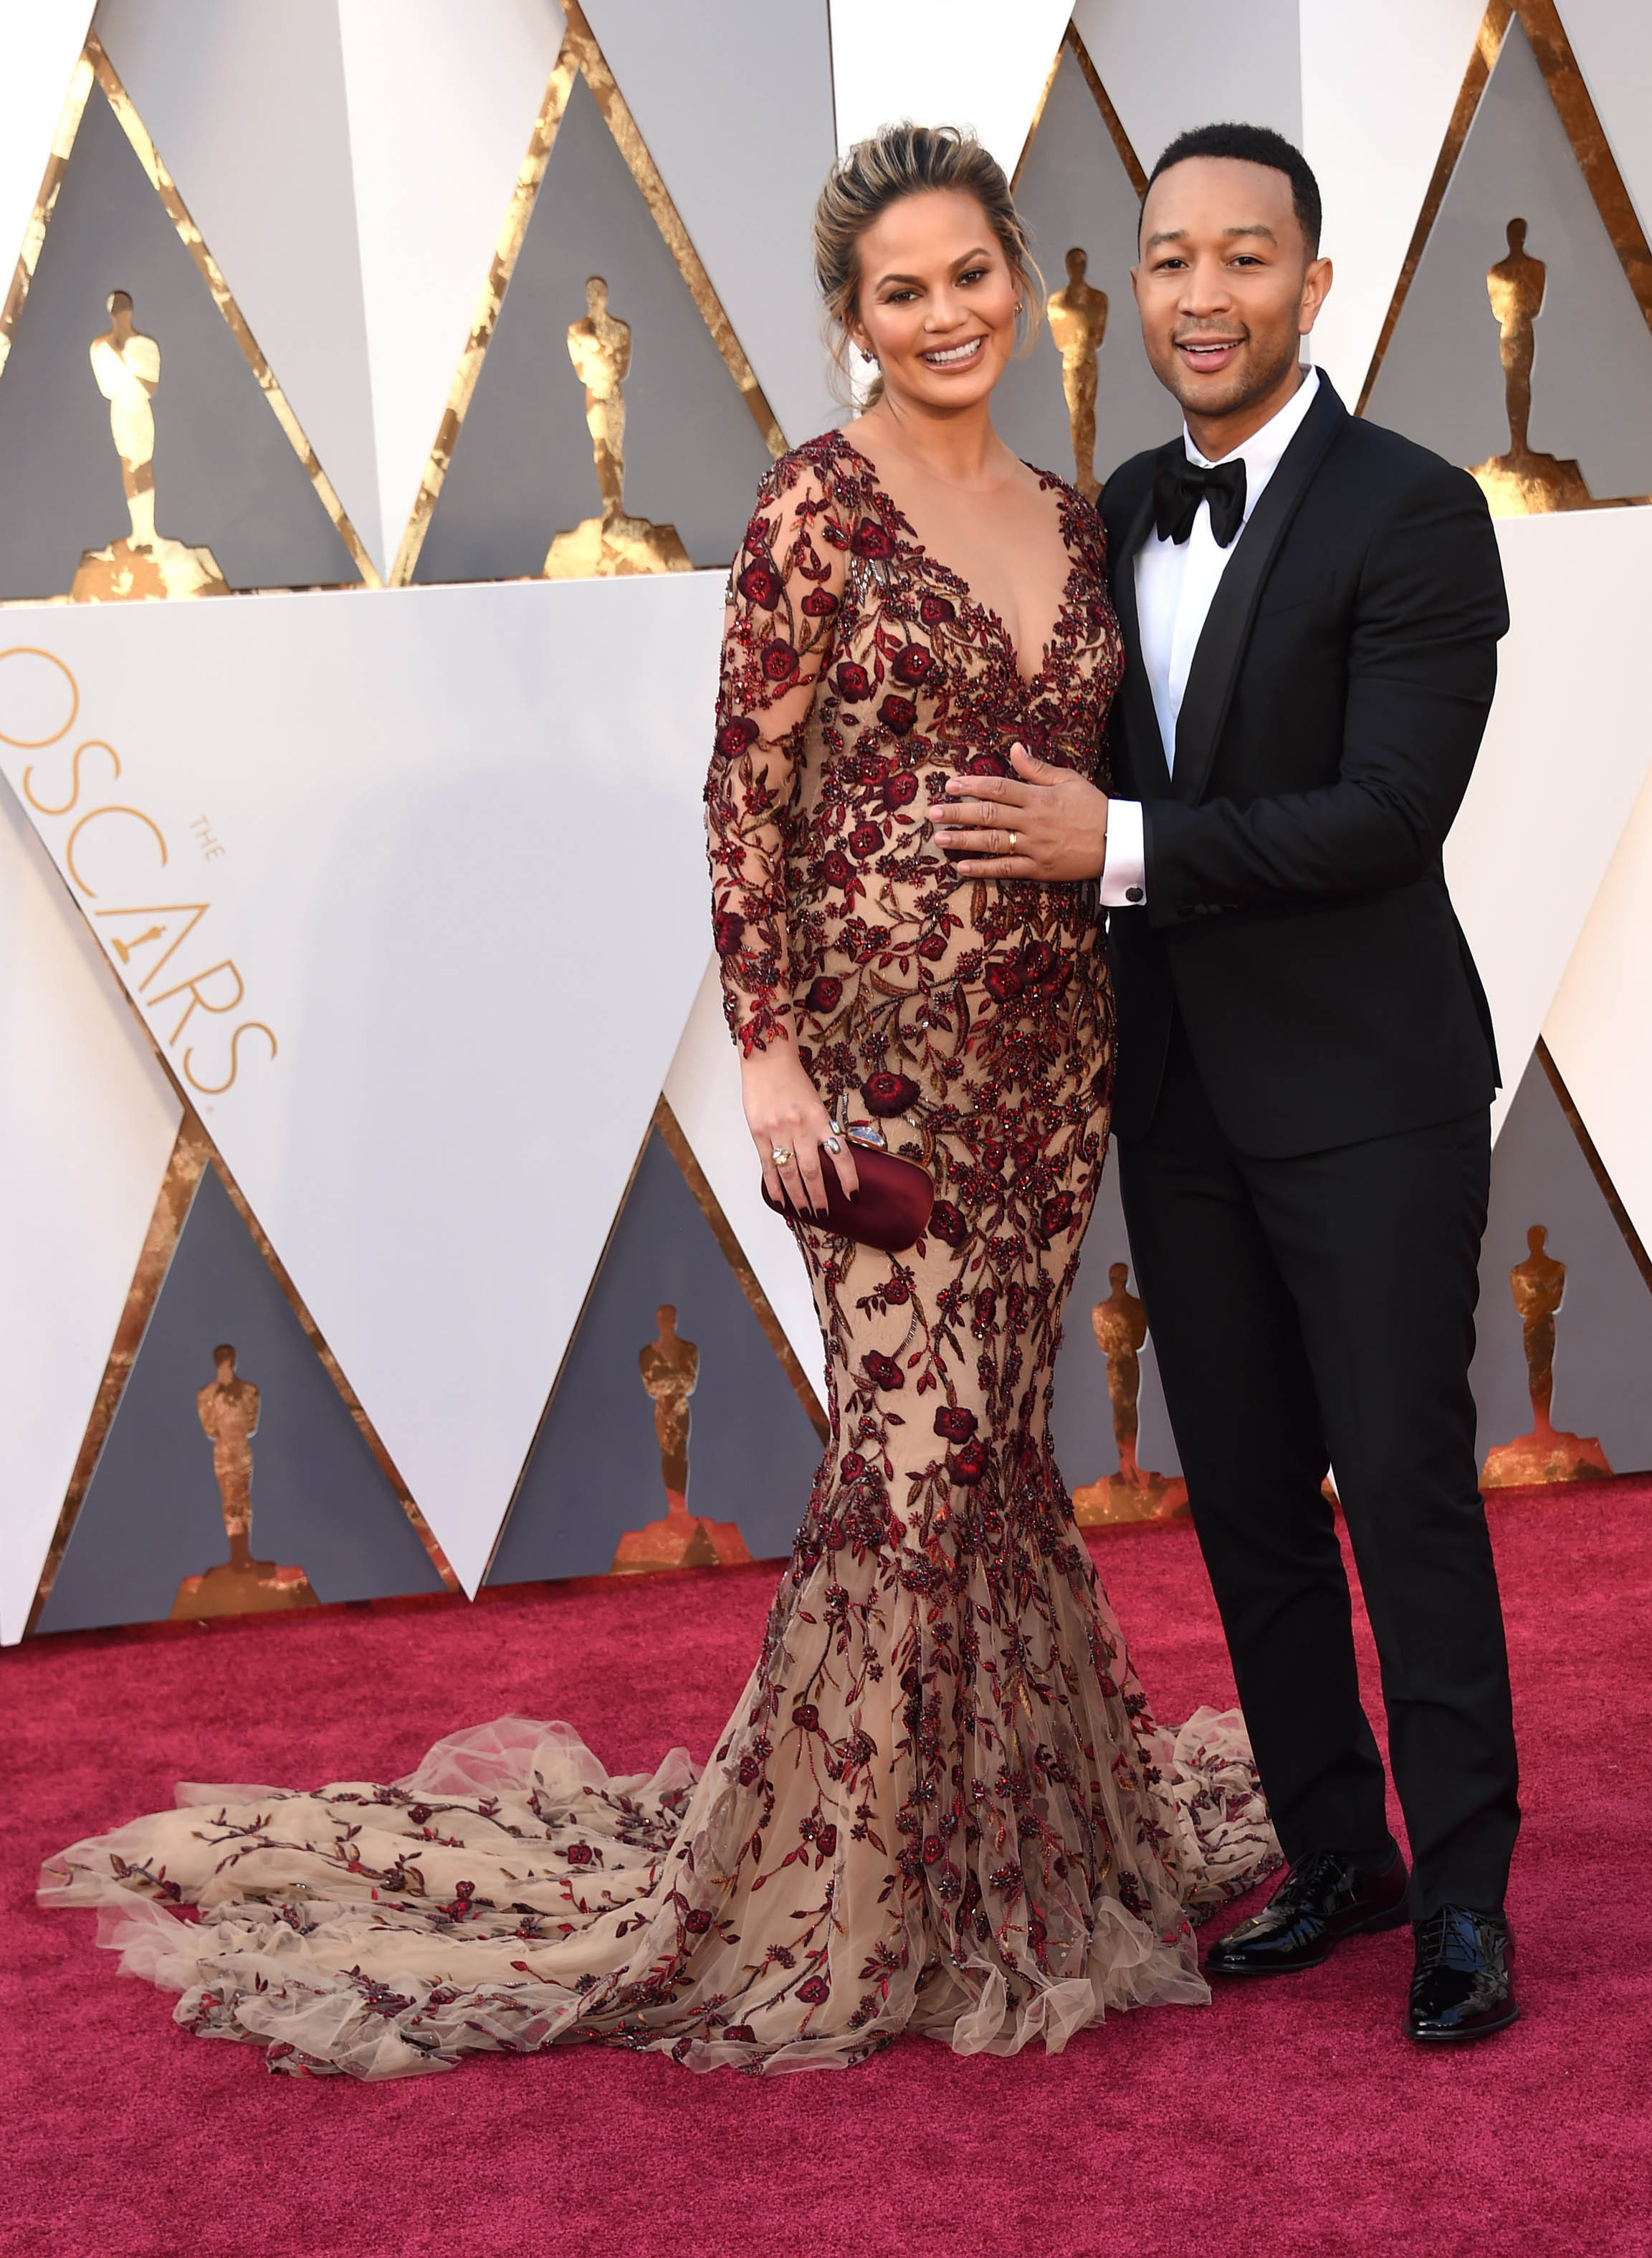 Photo by: KGC-11/starmaxinc.com STAR MAX Copyright 2016 ALL RIGHTS RESERVED Telephone/Fax: (212) 995-1196 2/28/16 Chrissy Teigen and John Legend at the 88th Annual Academy Awards (Oscars). (Hollywood, CA, USA)